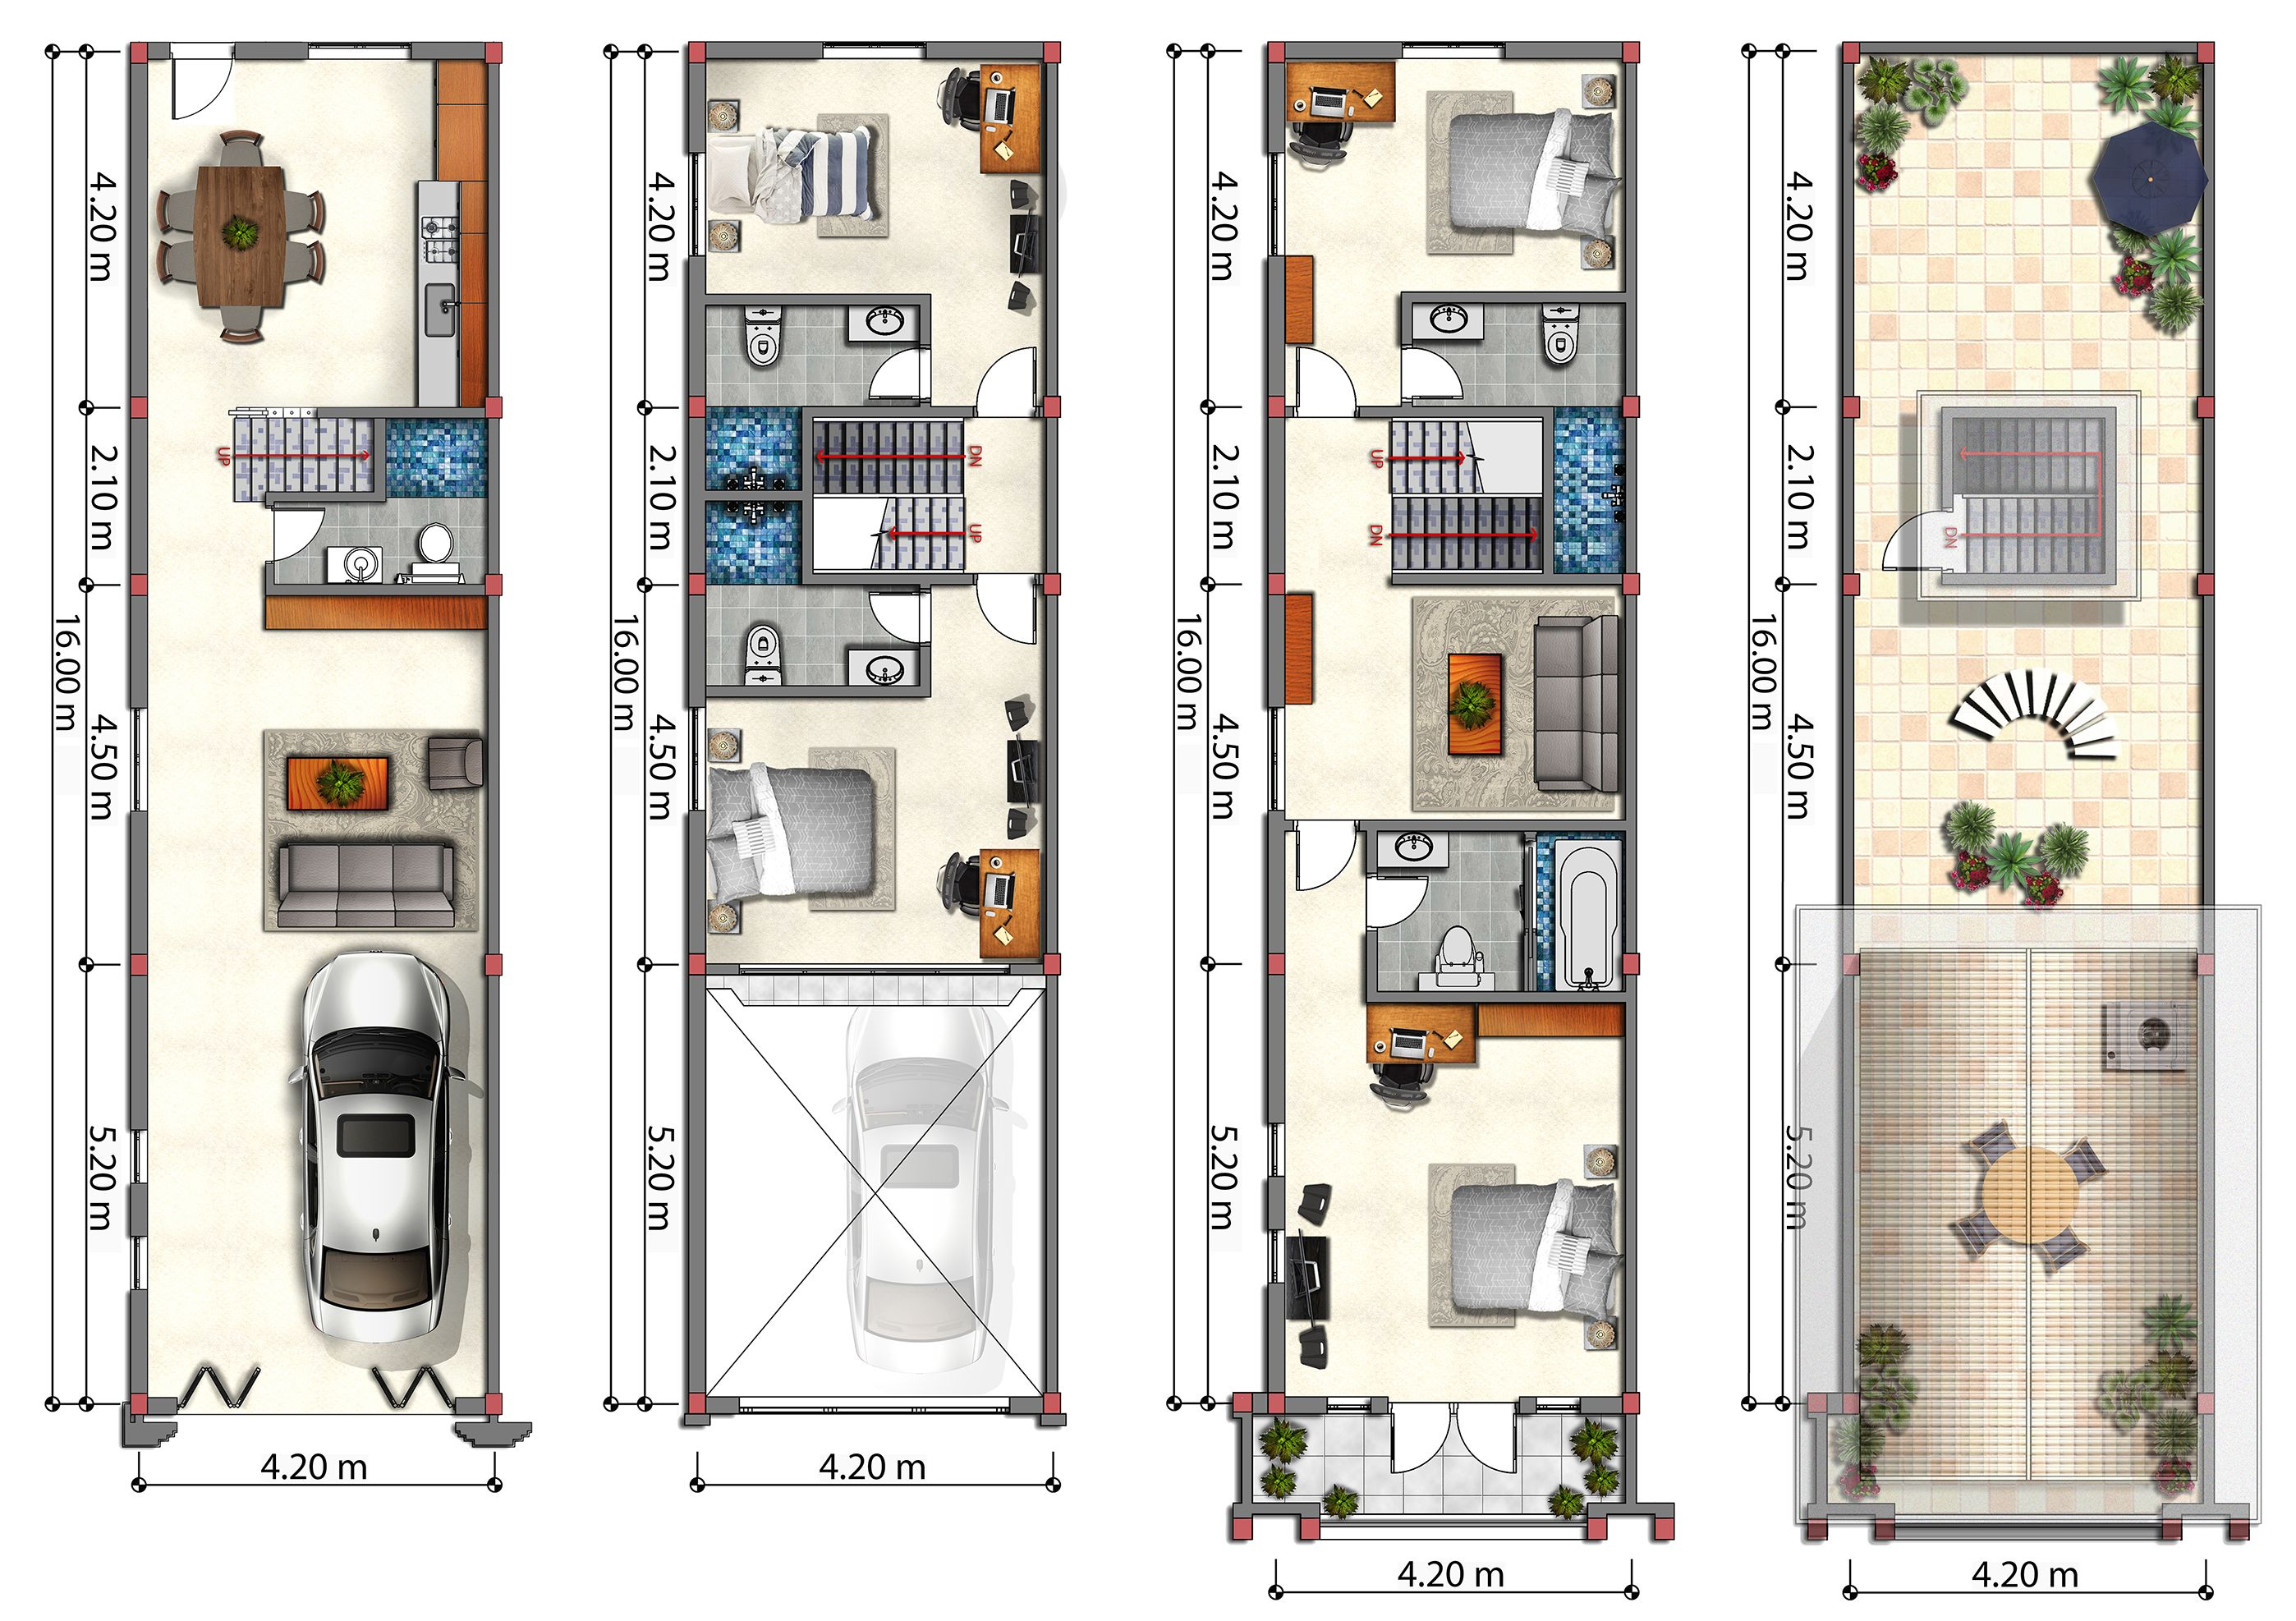 Floor Plans Flat House Phnom Penh Cambodia Gc Flat House Design House Plans House